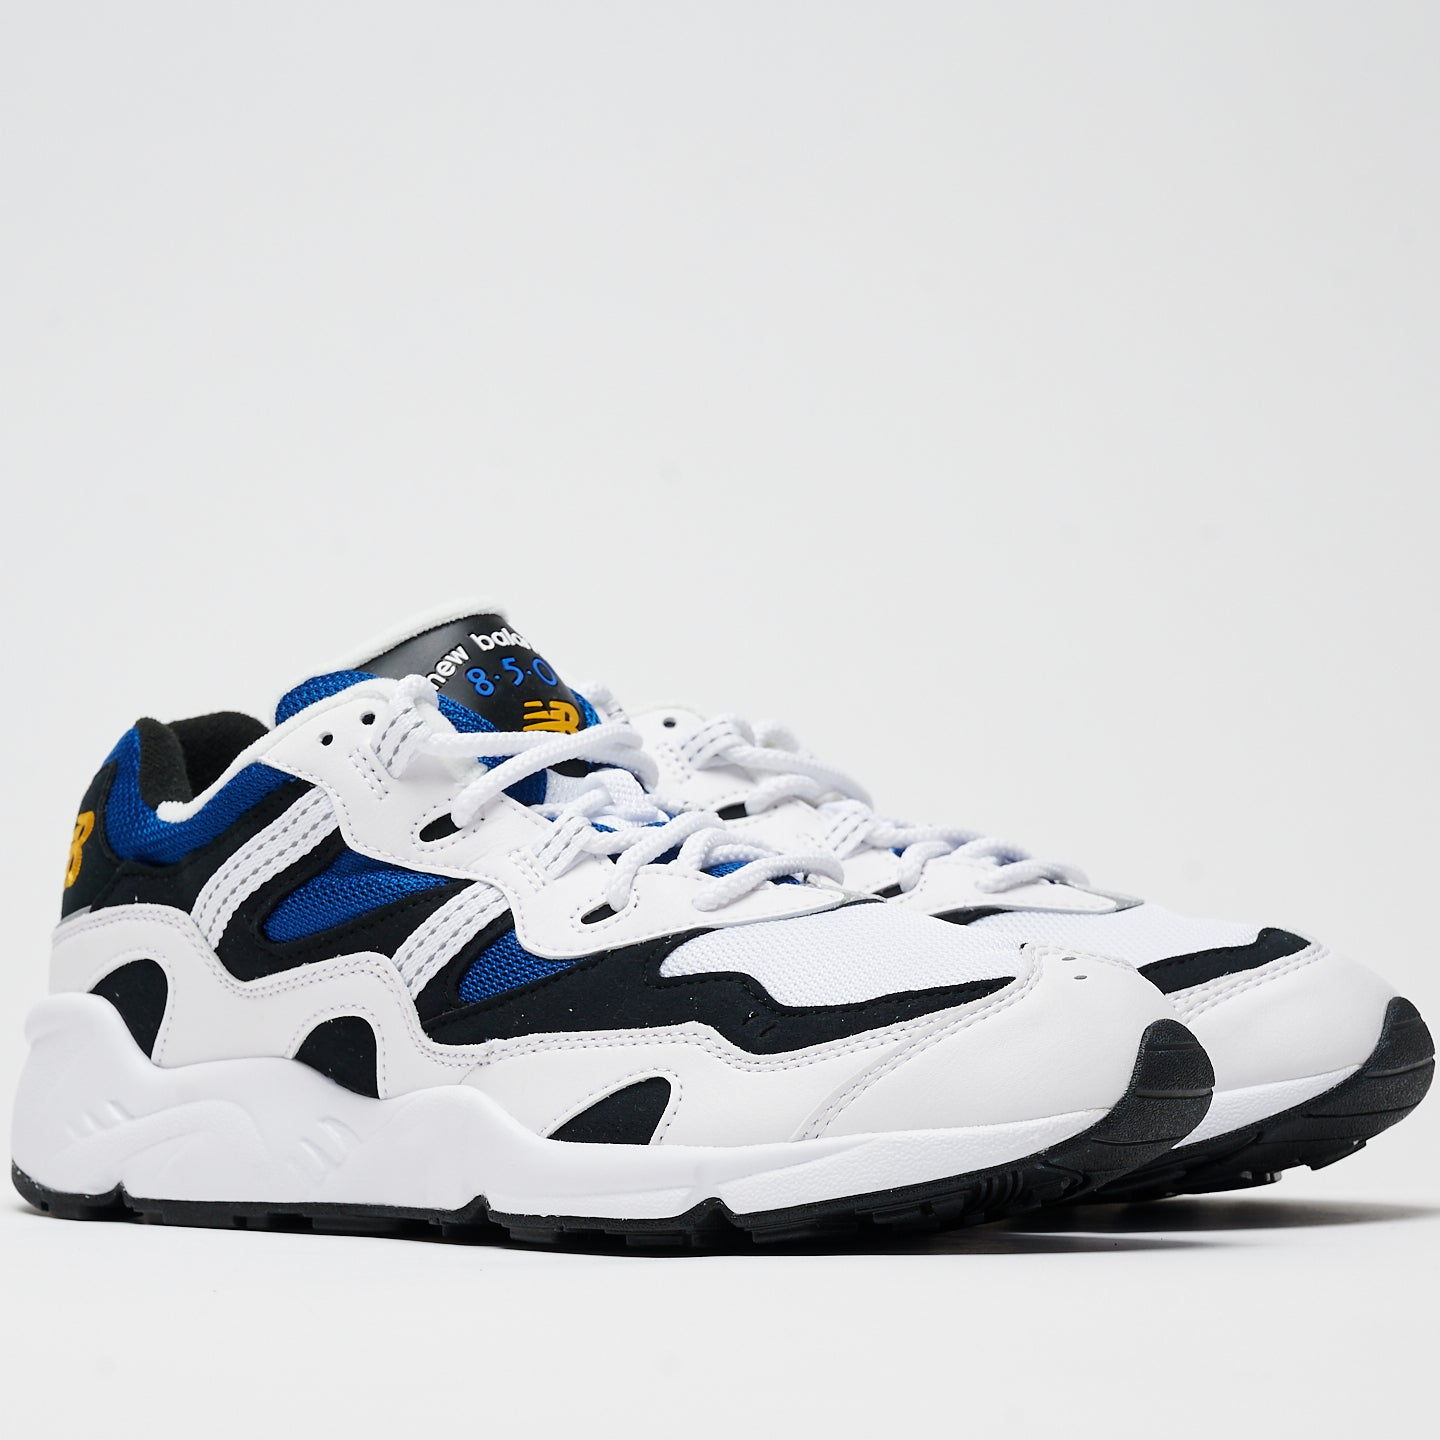 NEW BALANCE M'S FOOTWEAR 850 - WHITE/CLASSIC BLUE